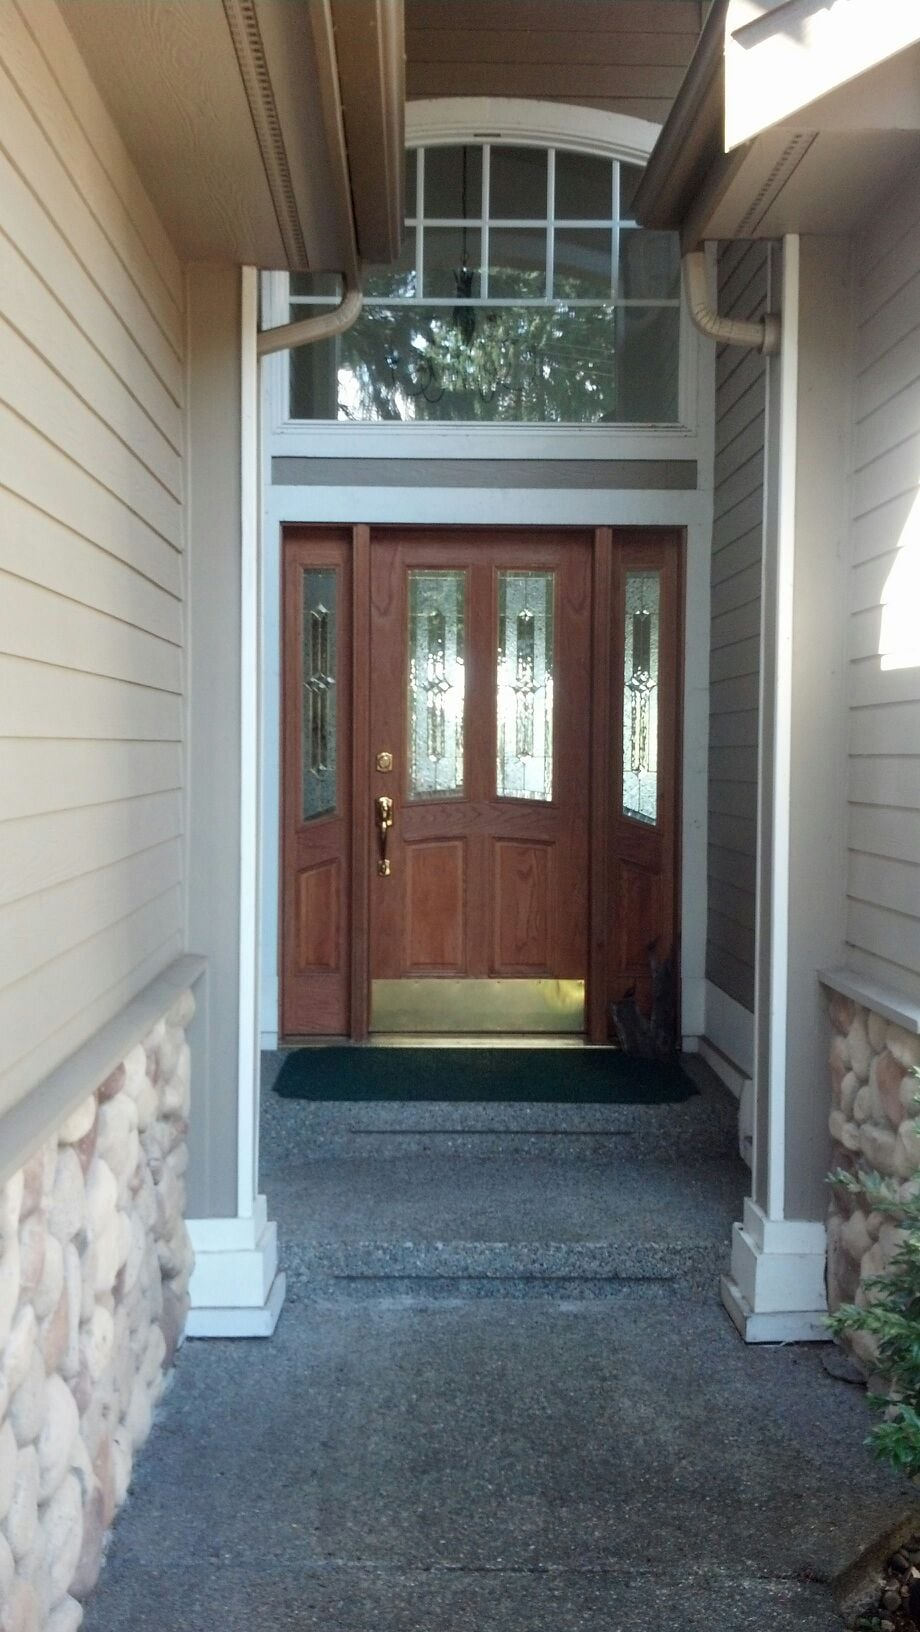 Welcome! You may use this main floor entrance or your private entrance as you like.